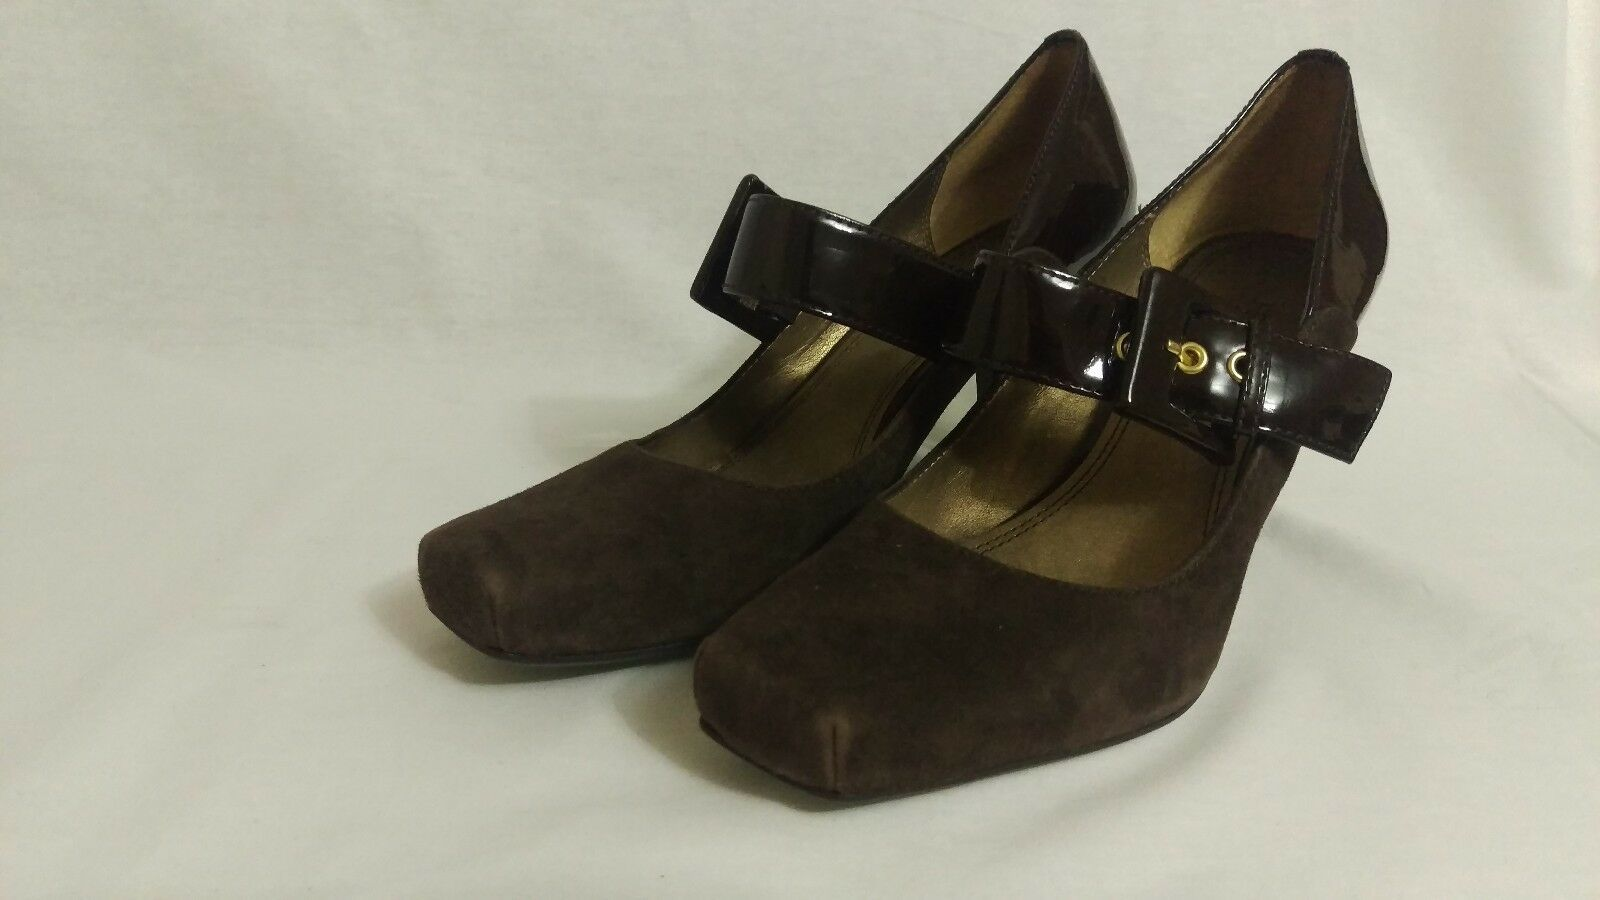 Primary image for Franco Sarto Women's Brown Shoes size 6M heels